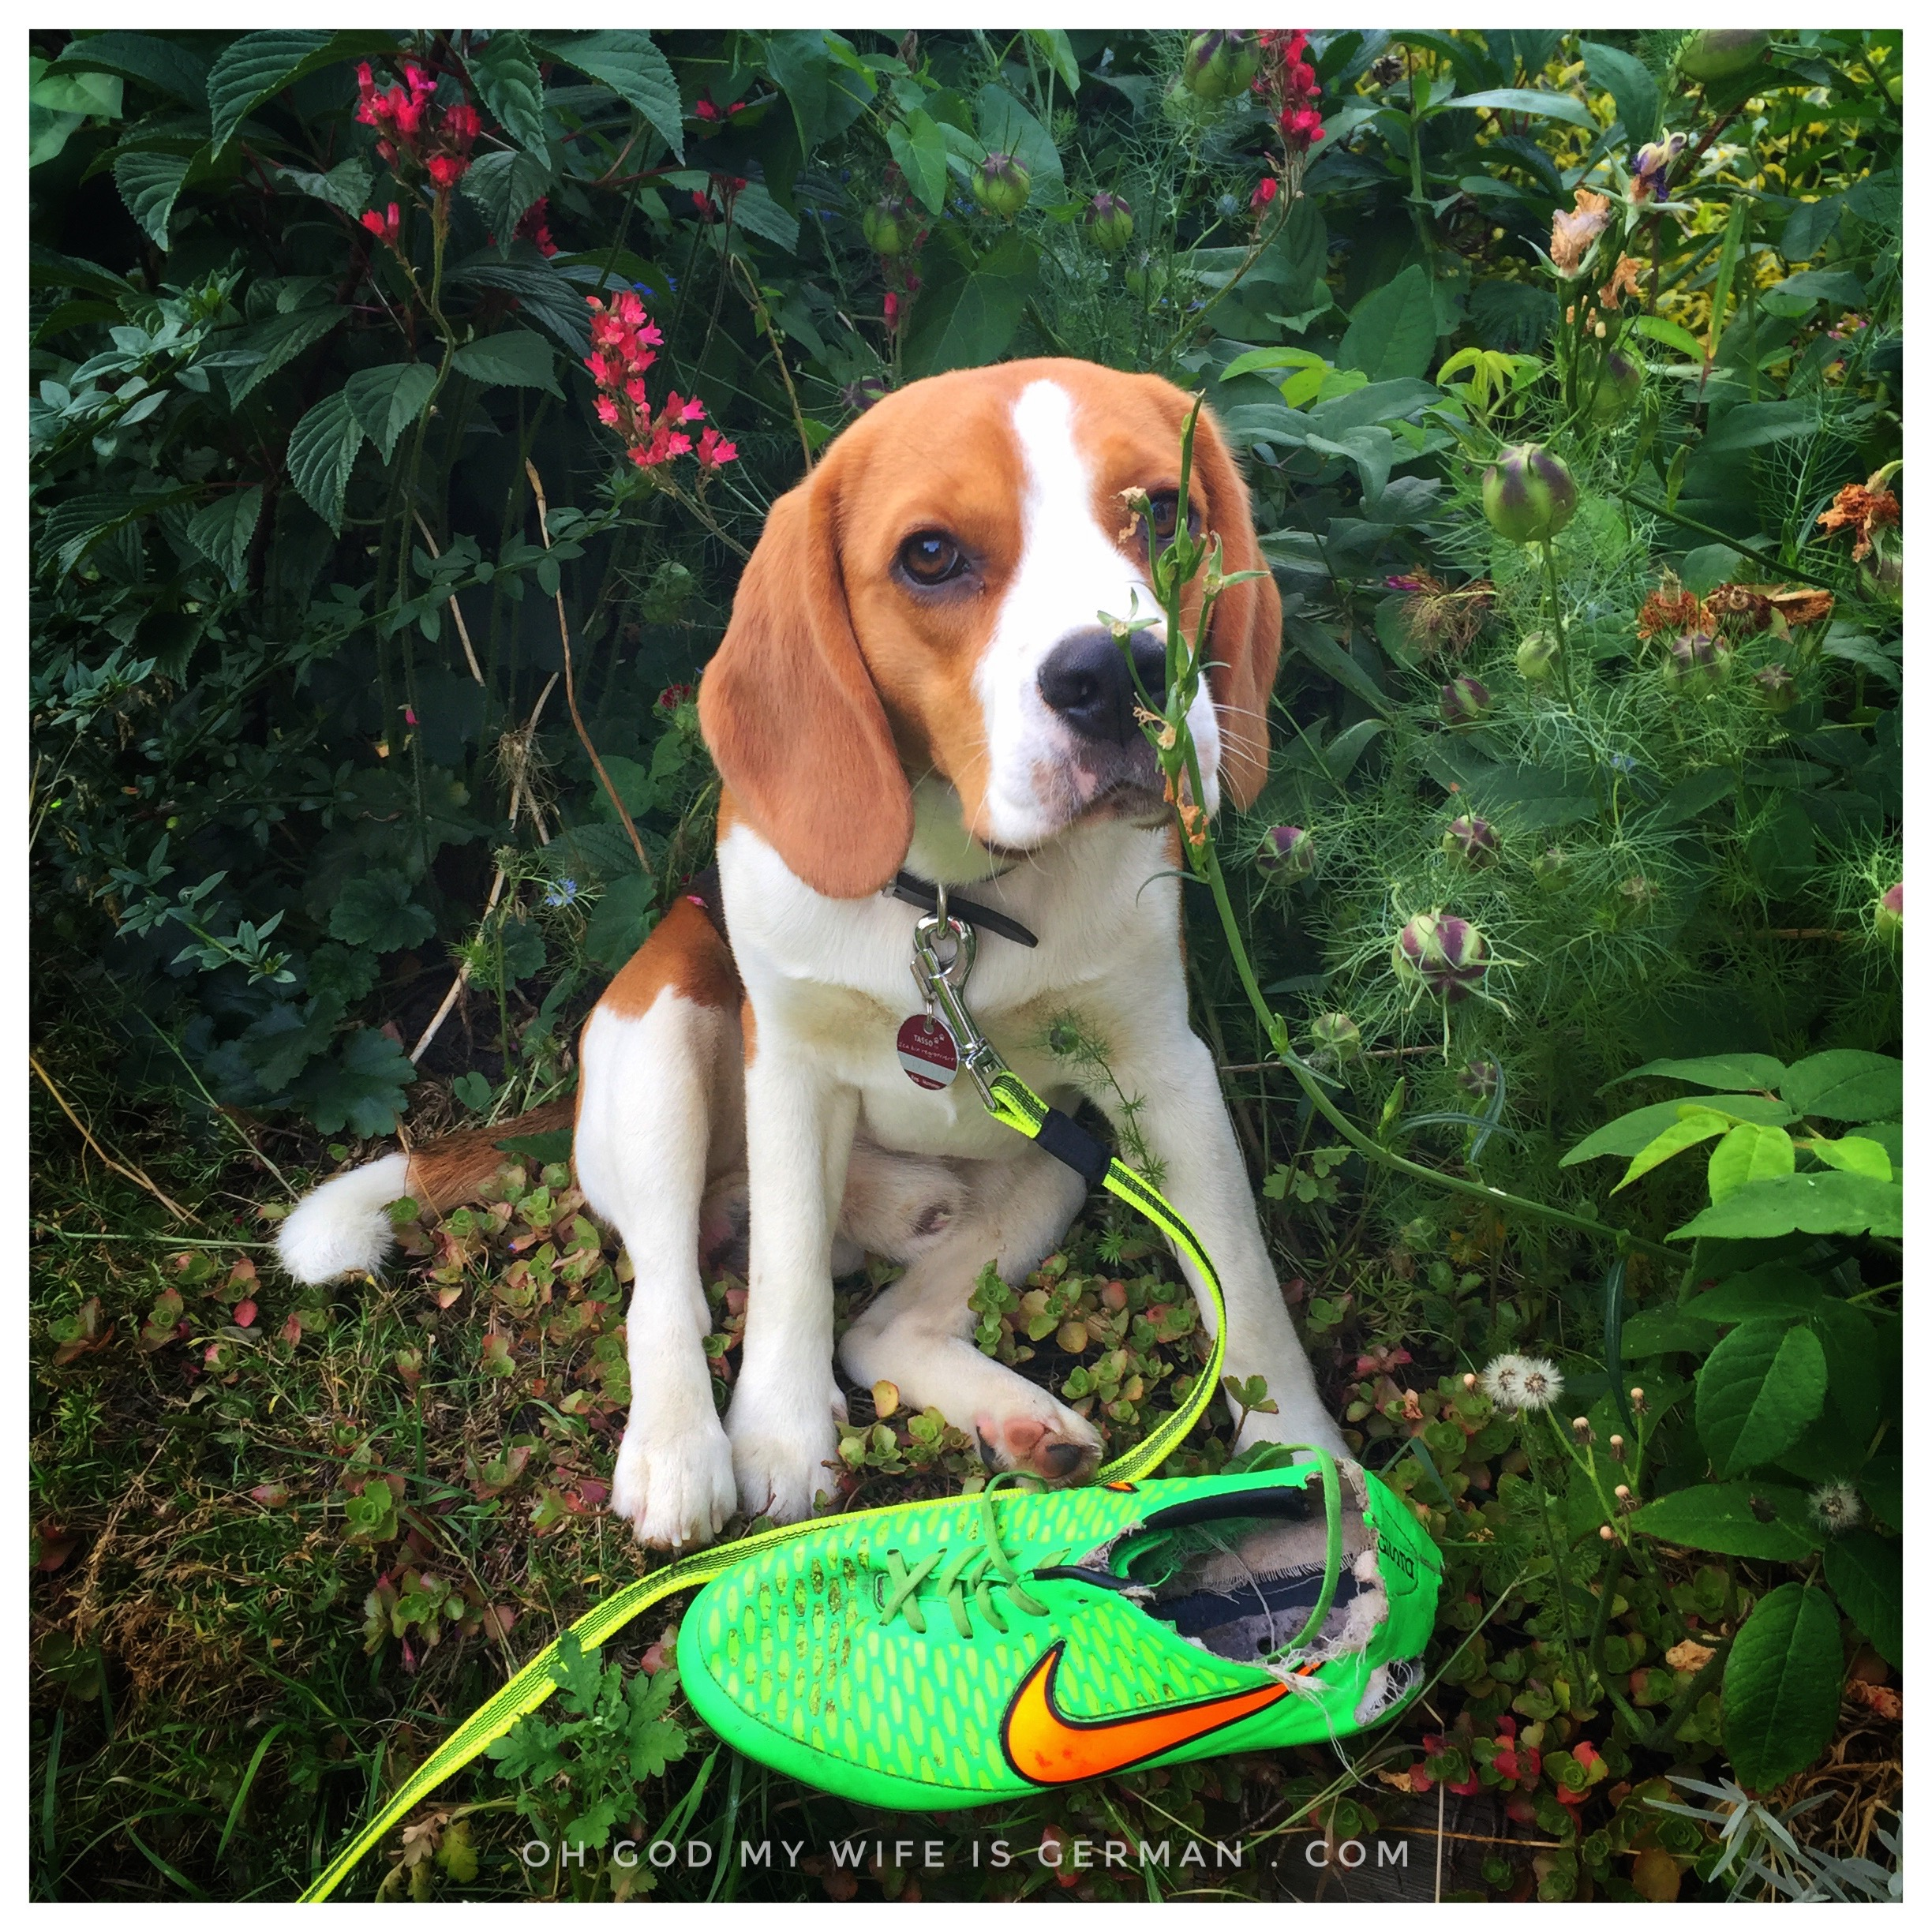 01 Cute Beagle Puppy Eating Shoe Oh God My Wife Is German